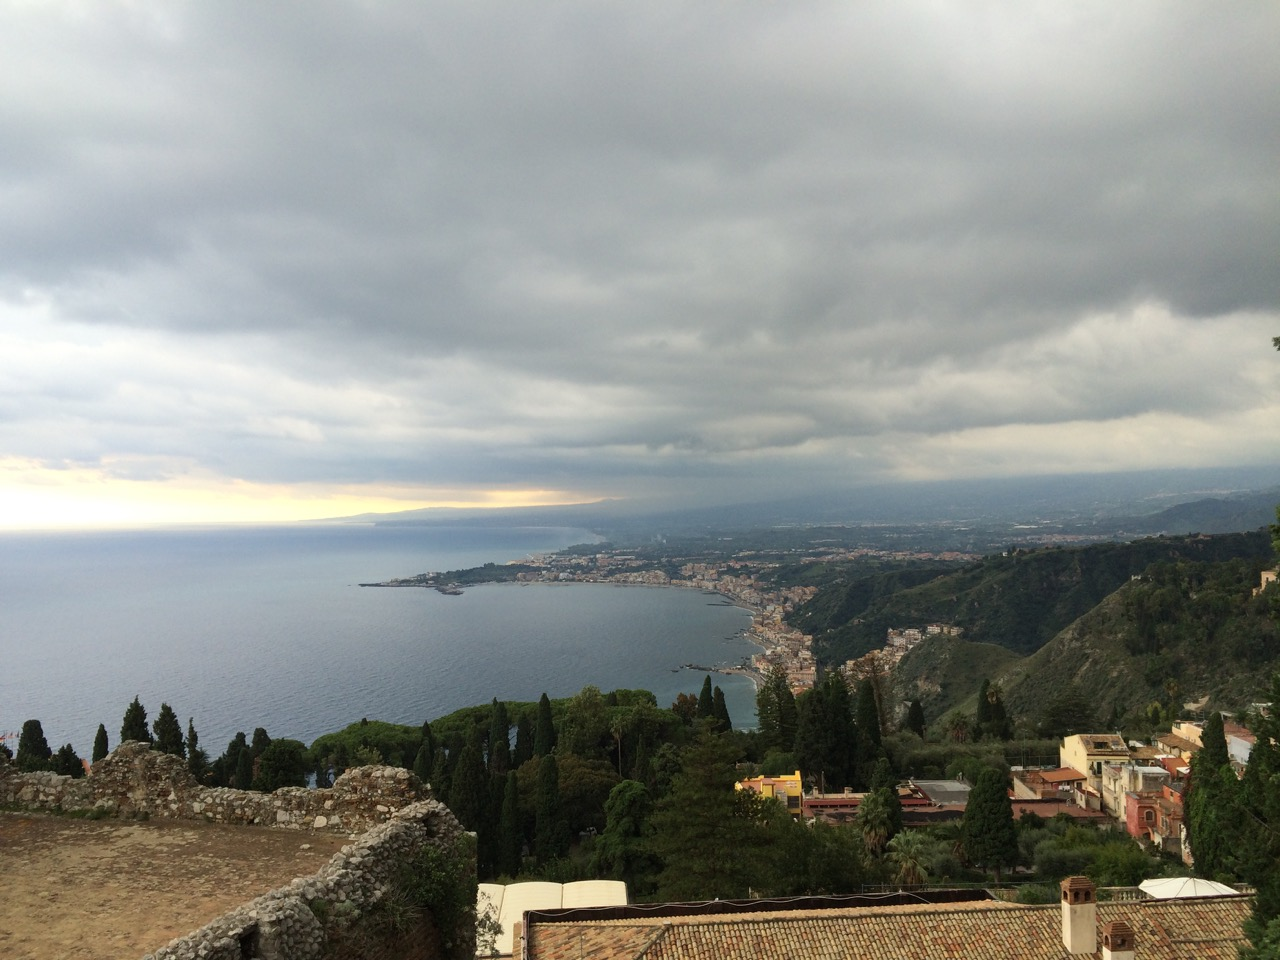 Cloudy October afternoon in Taormina